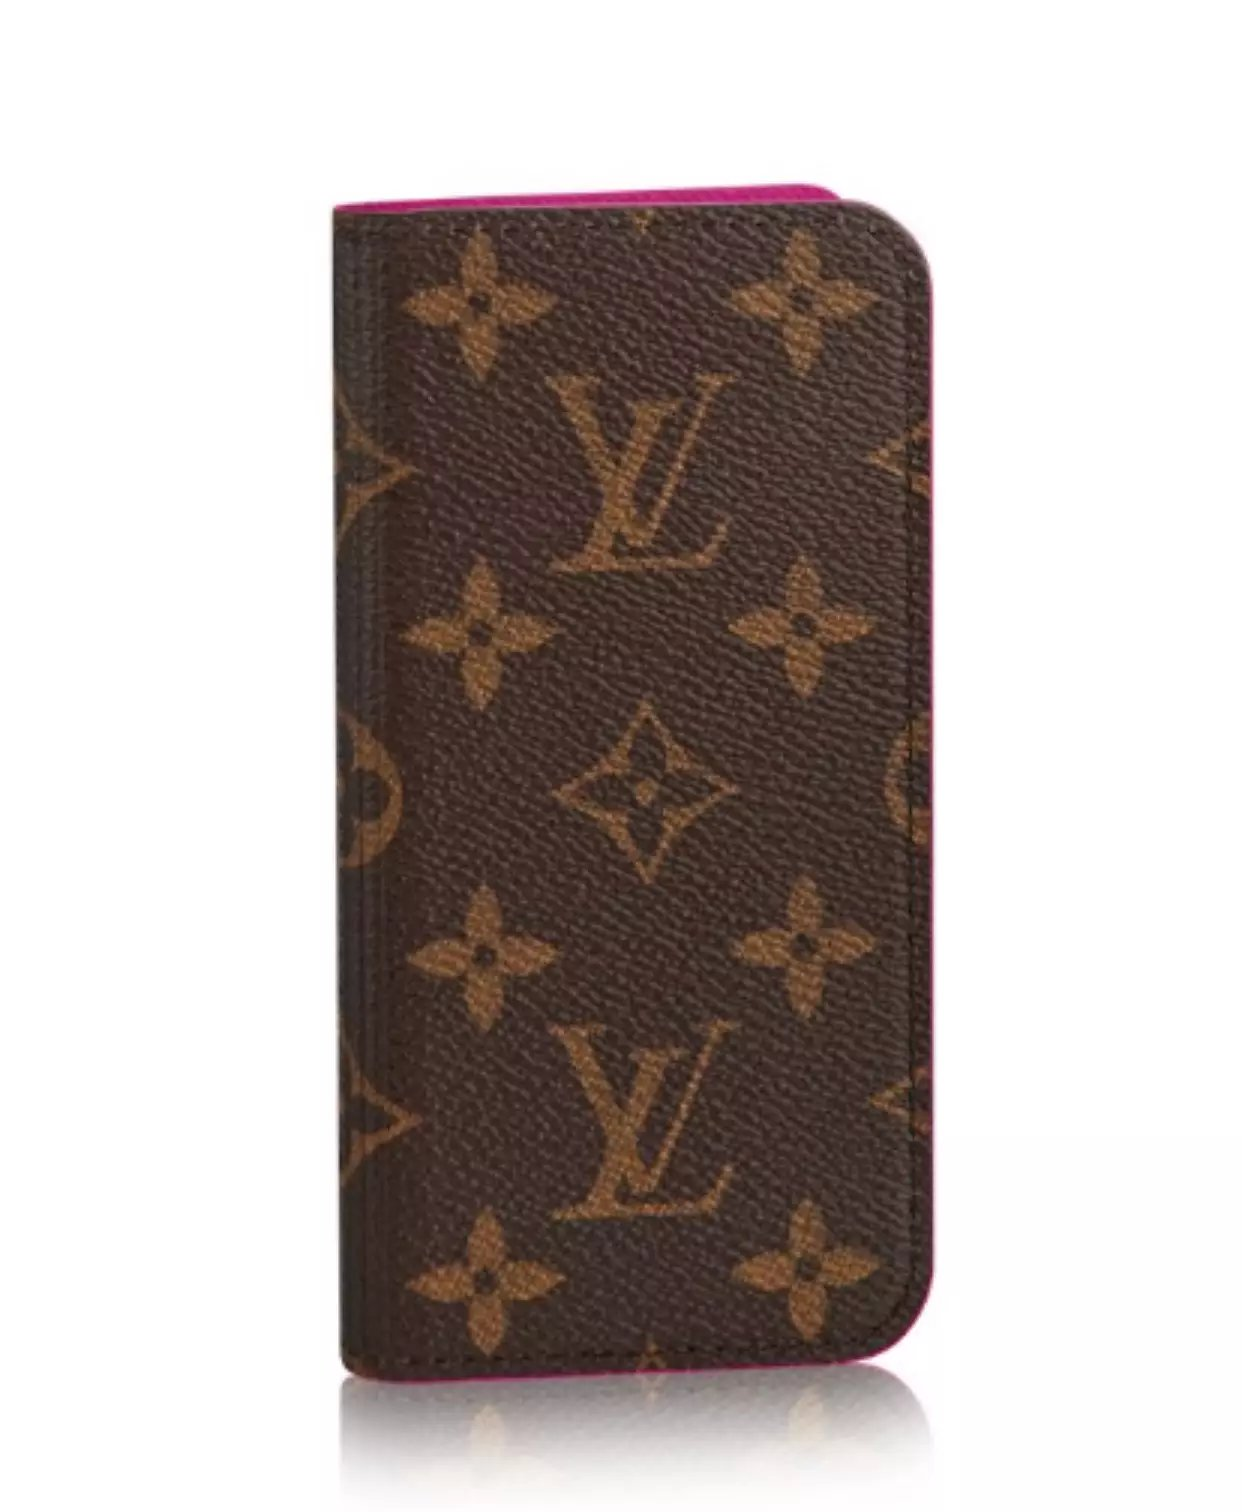 iphone 8 in case apple iphone 8 cover case Louis Vuitton iphone 8 case iphone 8 covers apple store cover on cell phone cases good phone cases cheap phone cases plus 8 iphone 8 cases designer brands